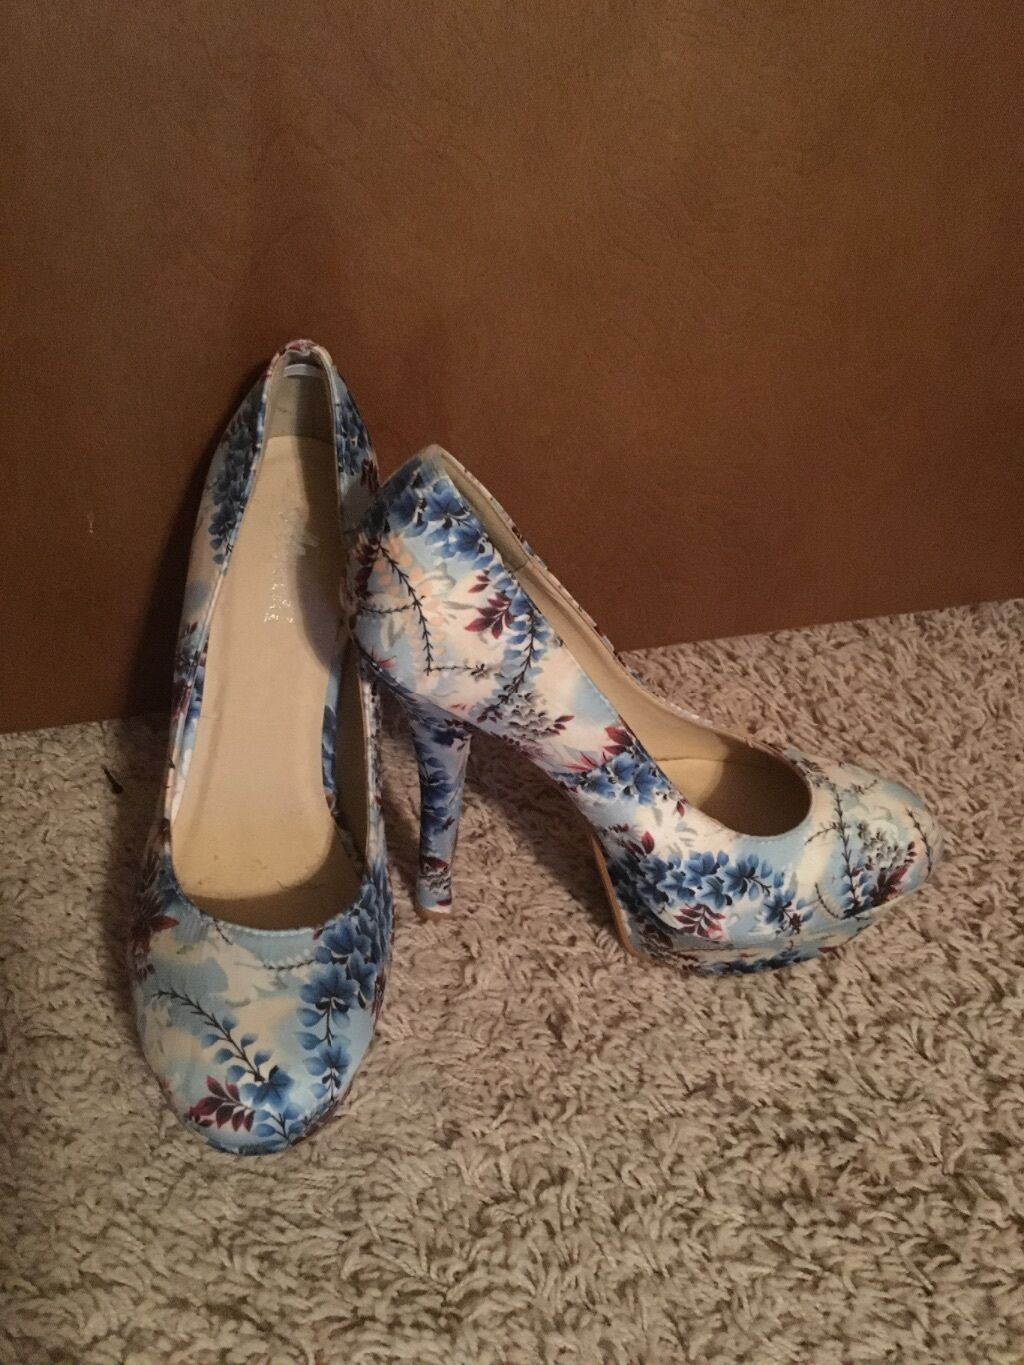 Man's/Woman's High High Heel Floral Prints High Man's/Woman's quality and cheap At a lower price Official website 586432